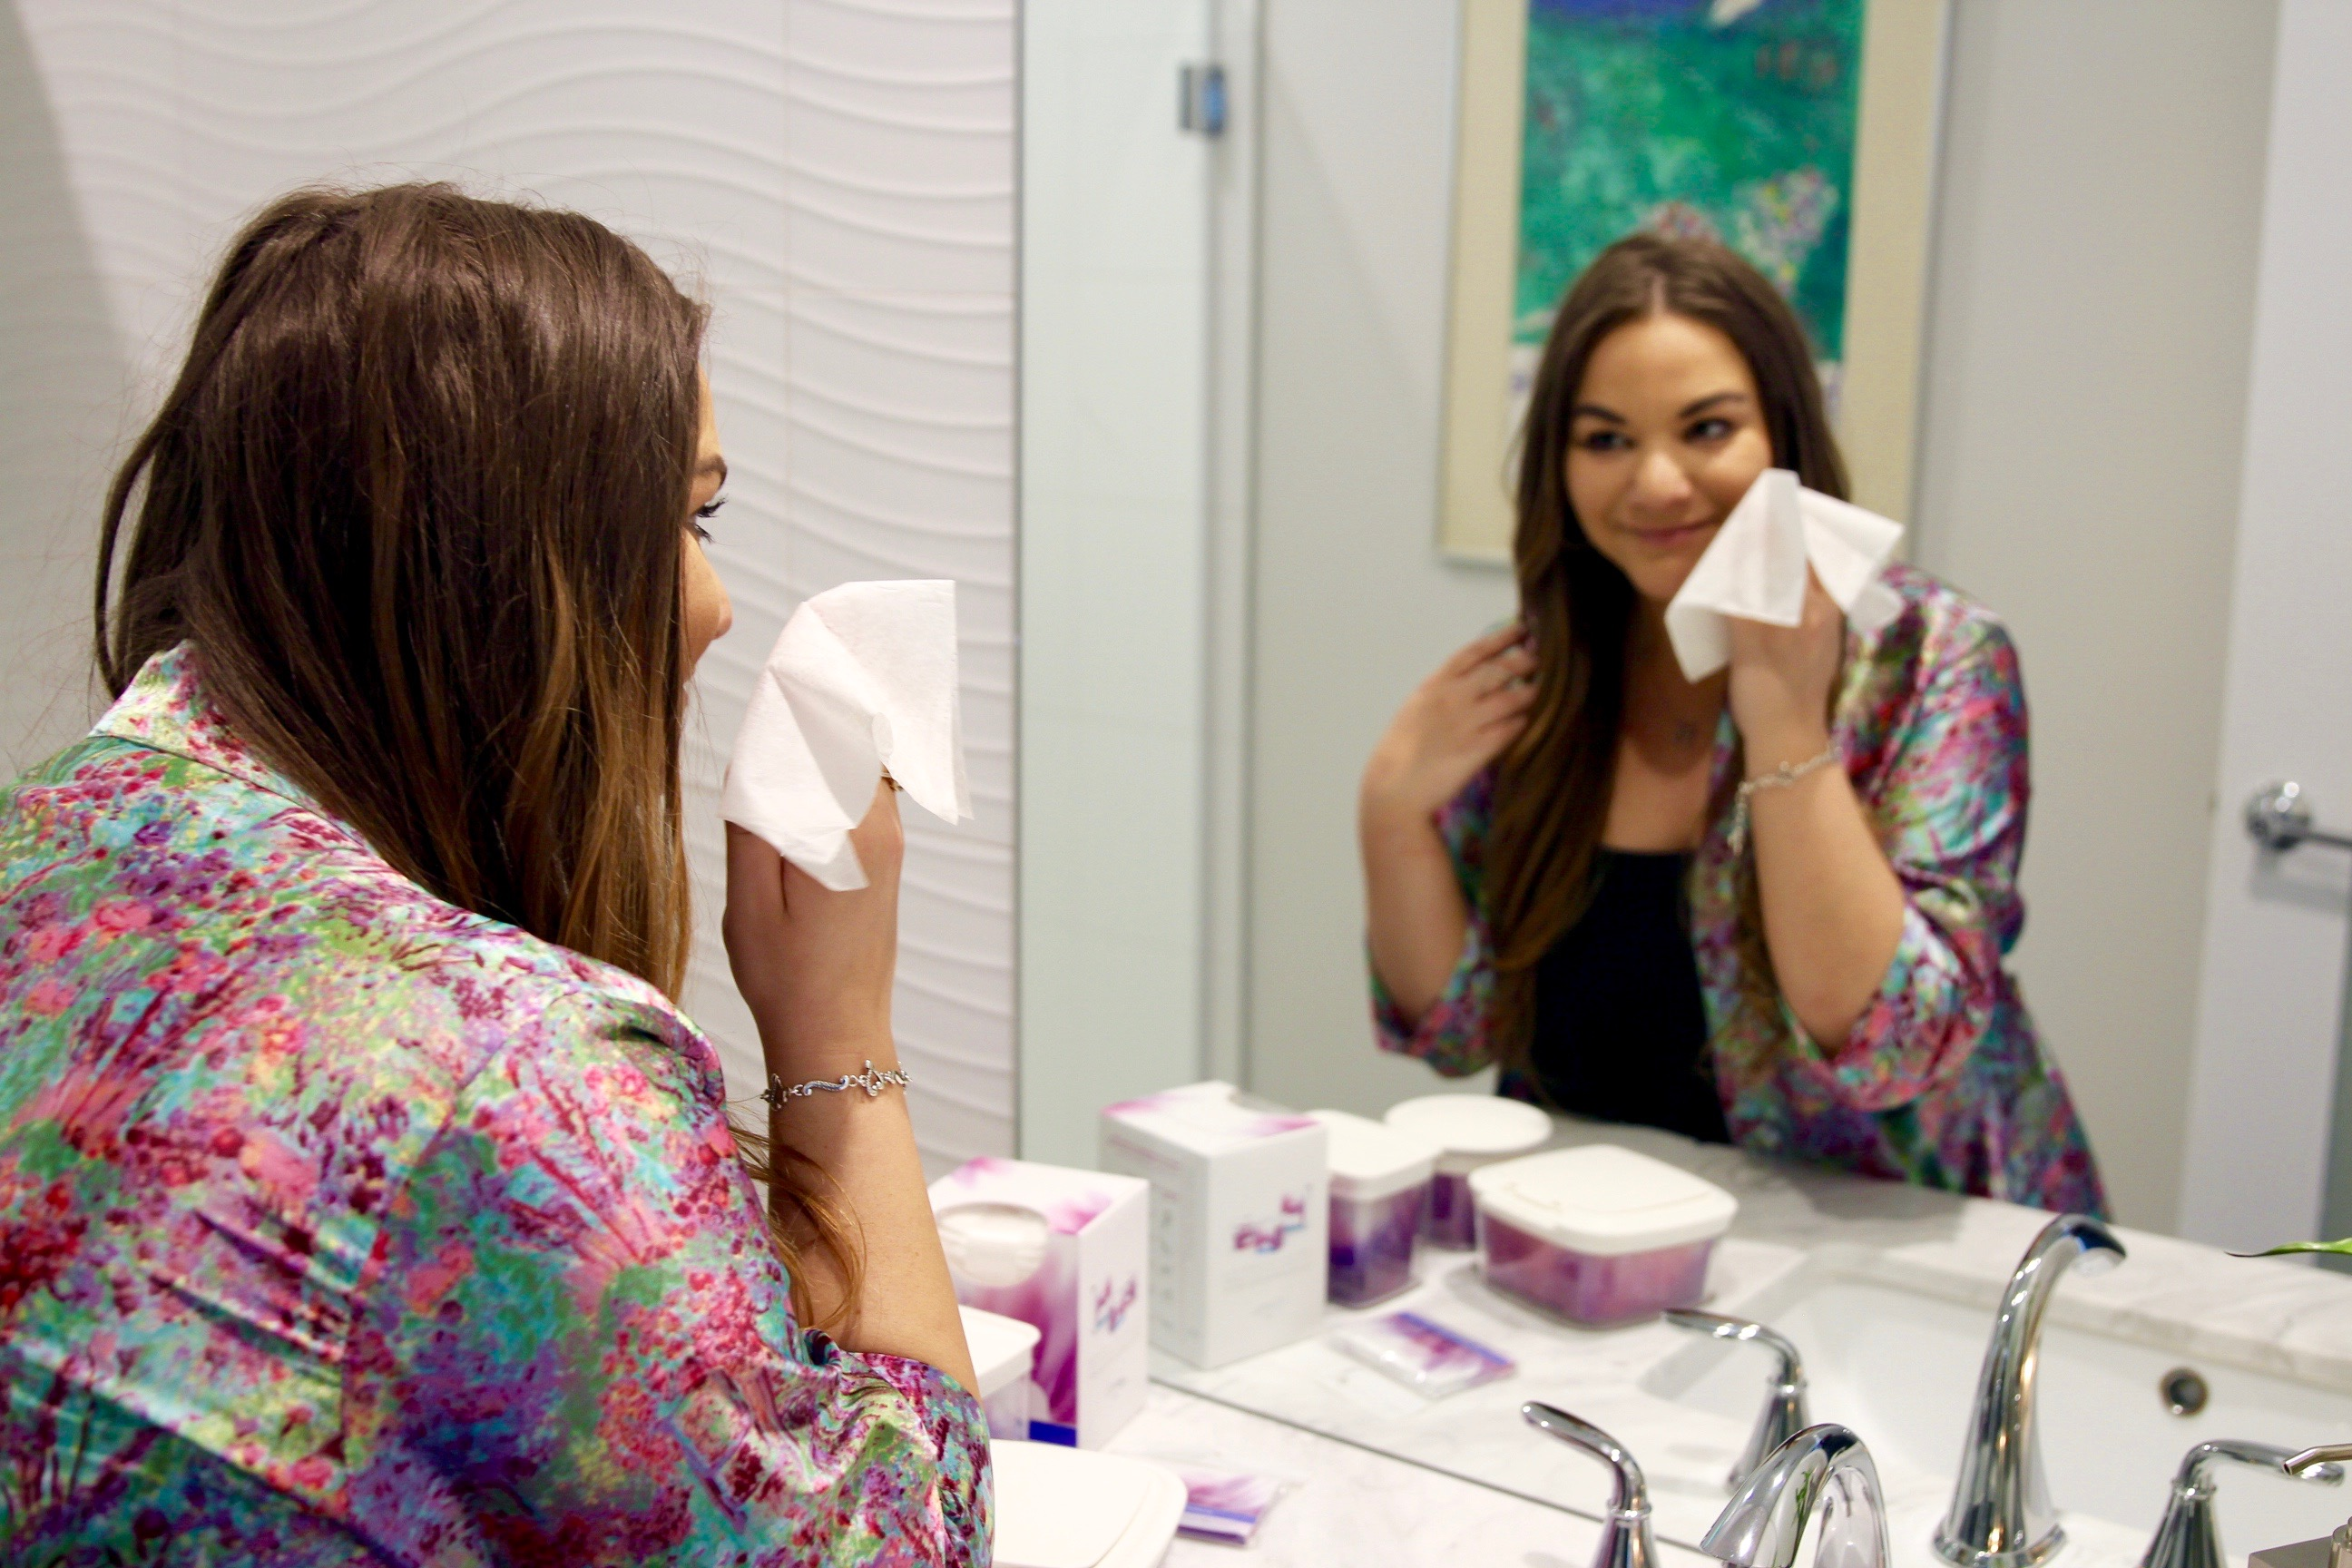 missyonmadison, melissa tierney, collectively inc, kleenex, kleenex cleansing system, facial cleansing, kleenex facial cleansing, facial wipes, makeup remover, makeup remover wipes, radiant skin, sample giveaway, product reviews, beauty blogger, kleenex reviews, healthy skin, skin care,